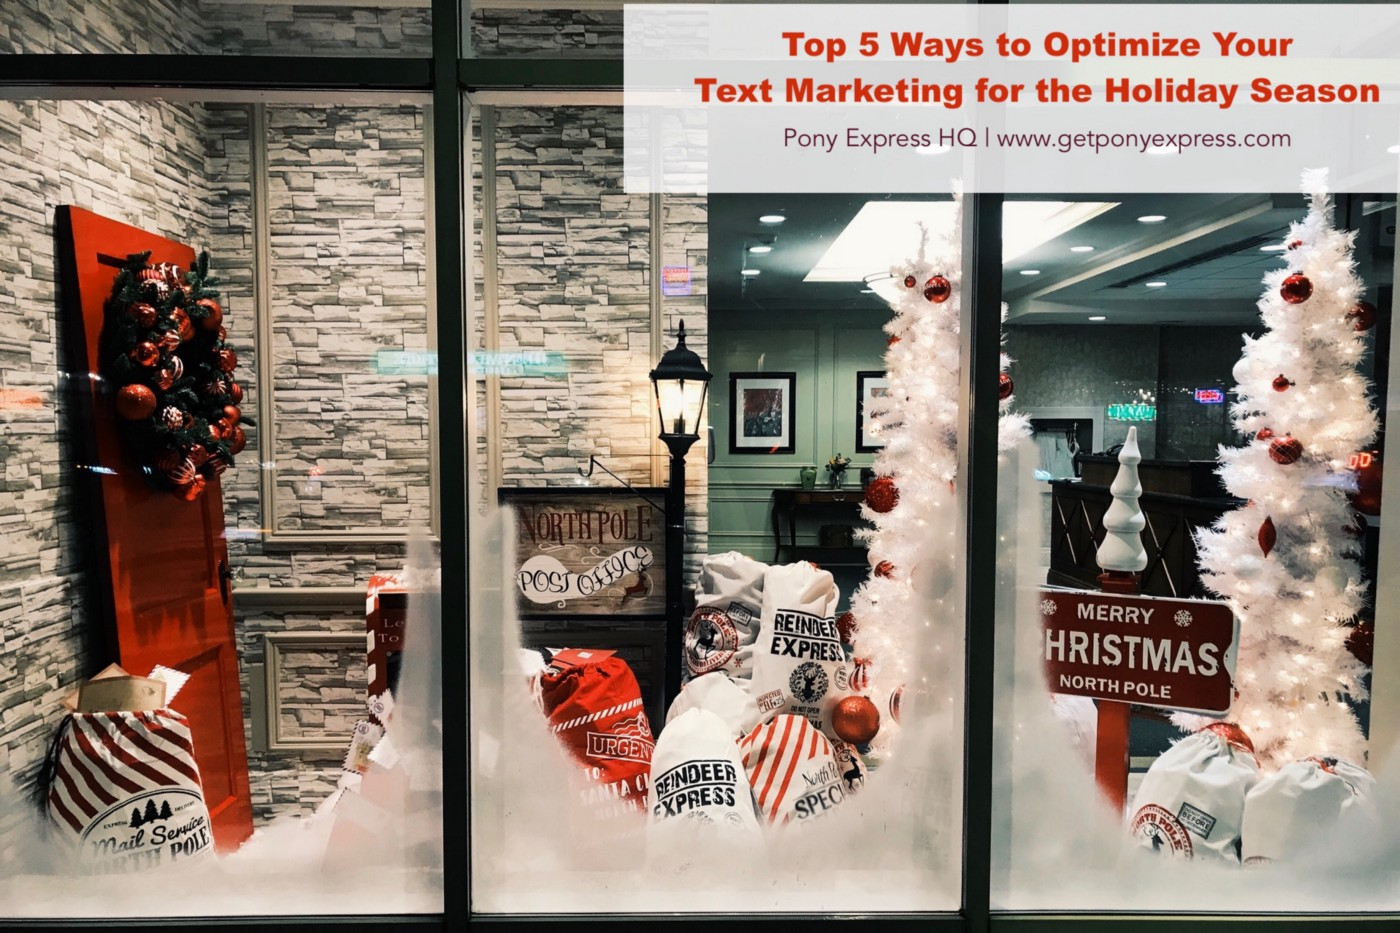 Top 5 Ways to Optimize Your Text Marketing for the Holiday Season